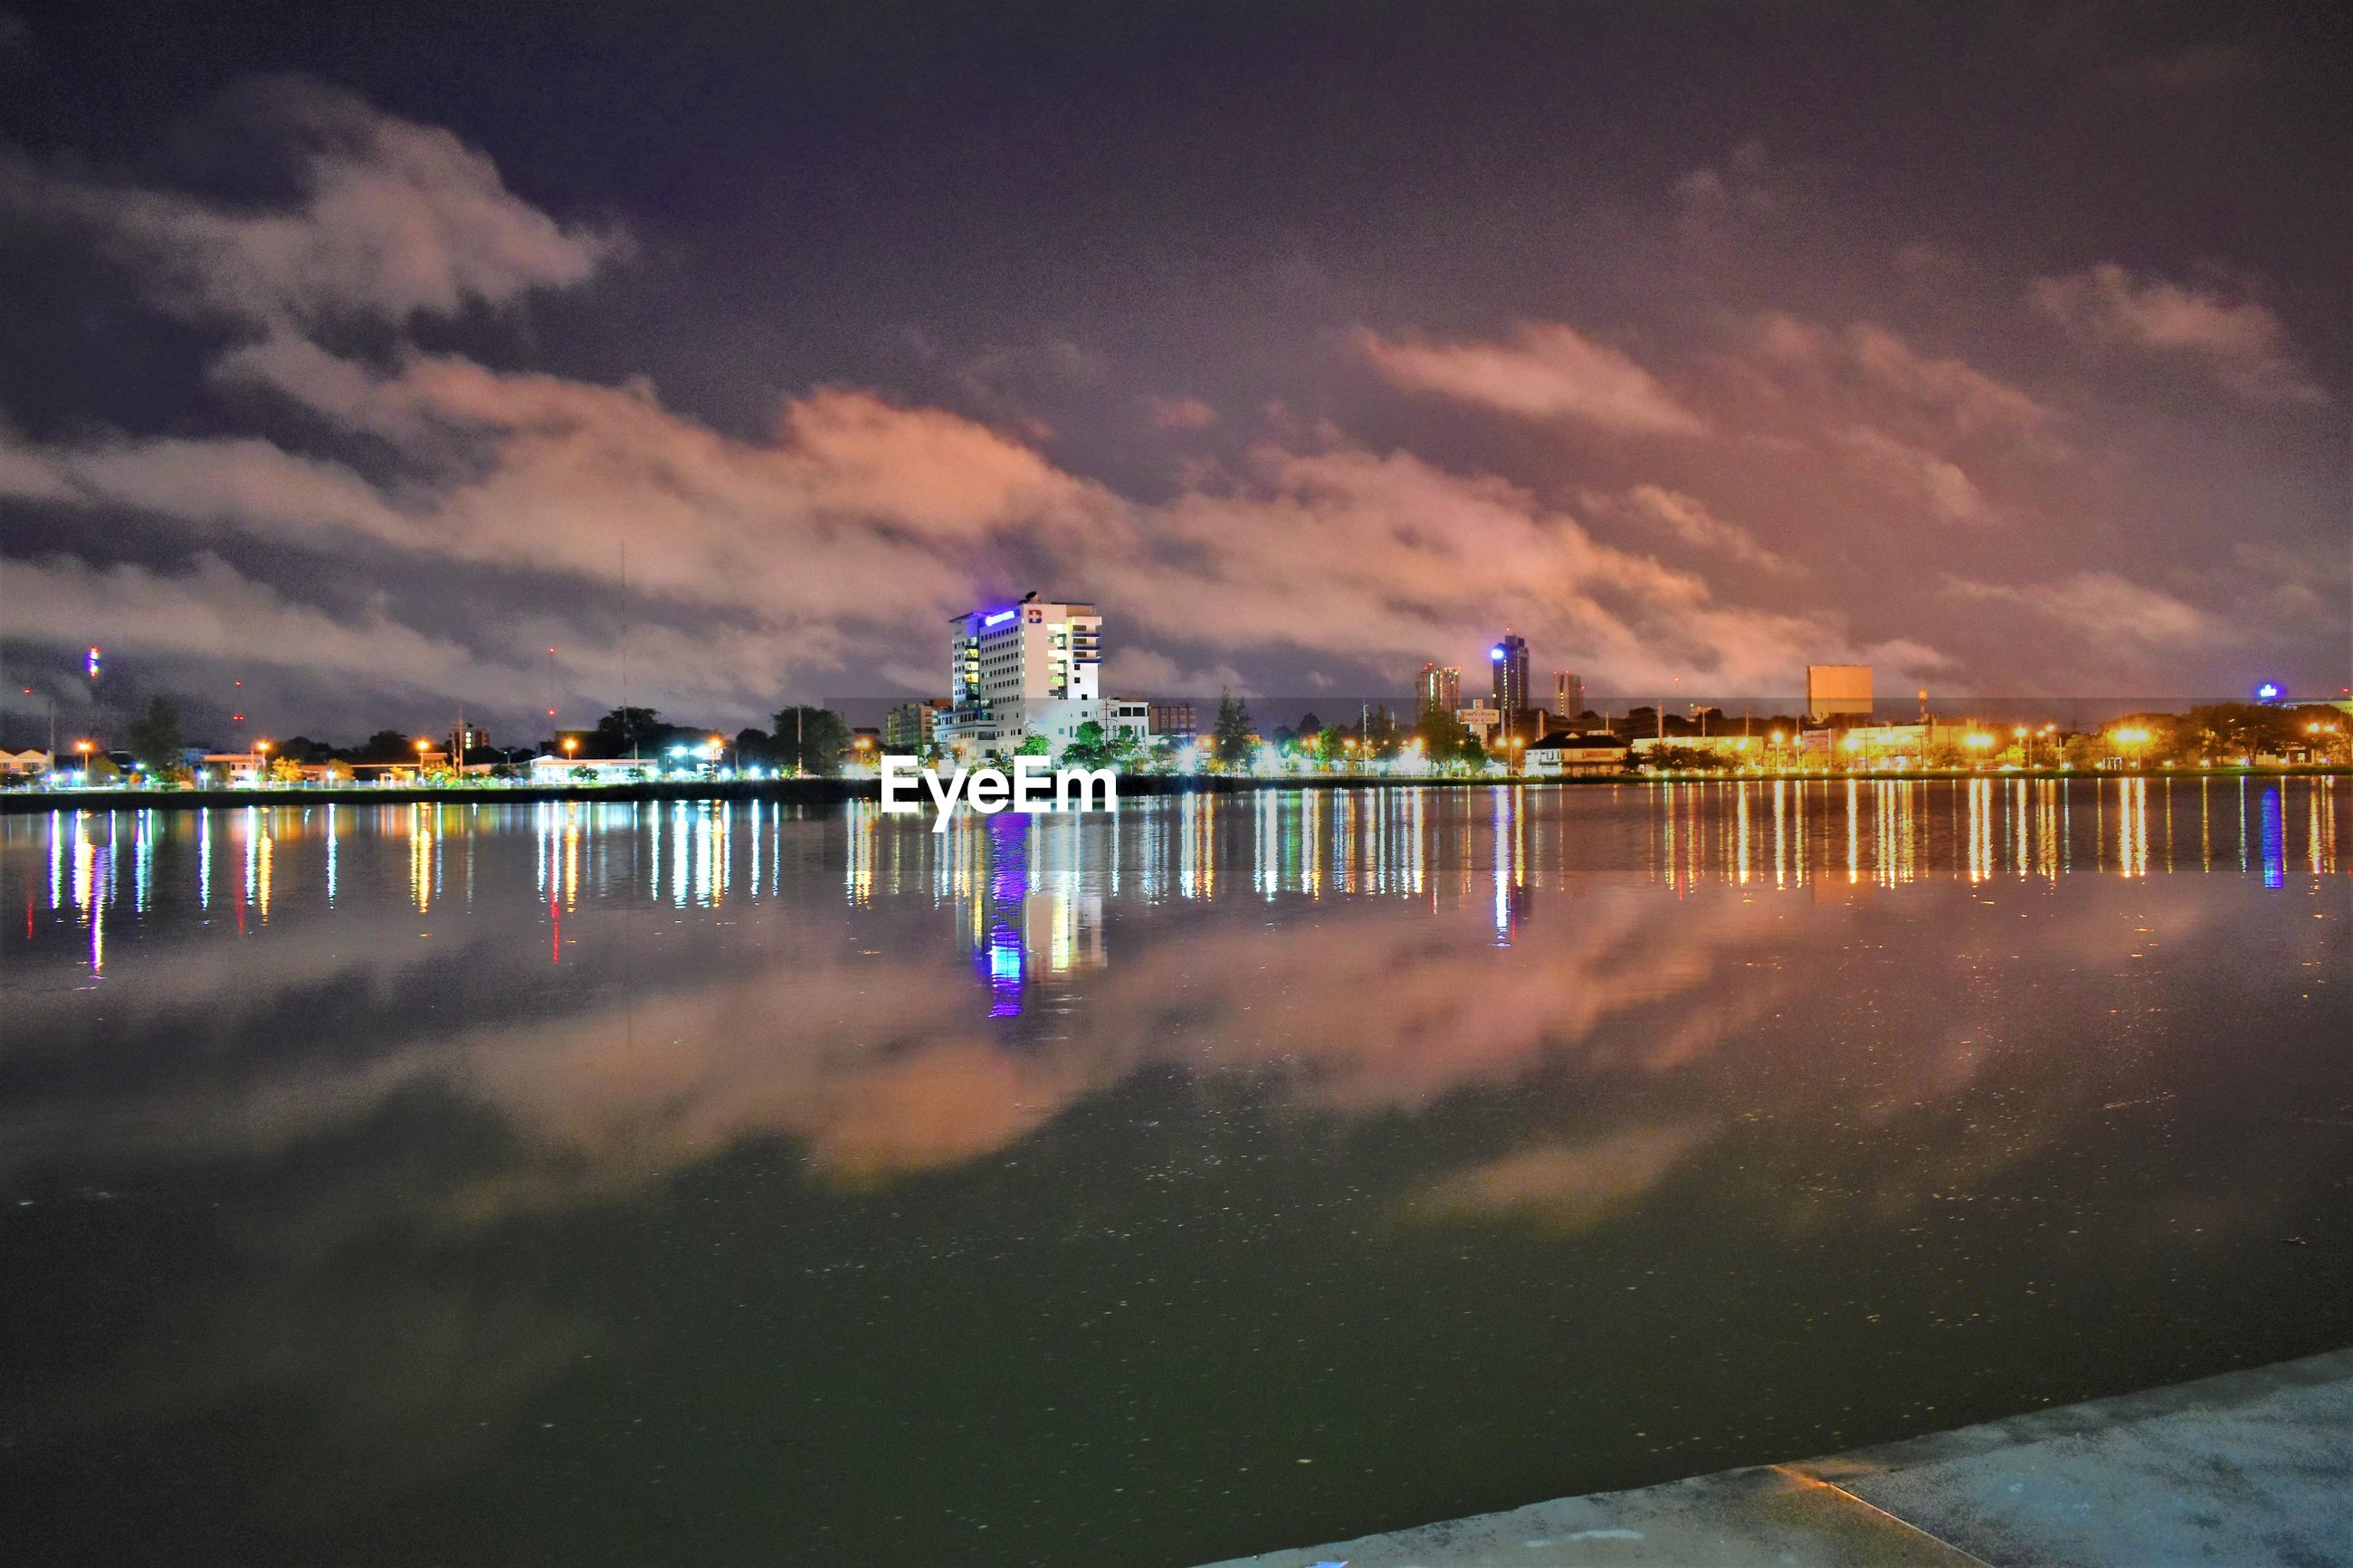 Illuminated buildings by lake against cloudy sky